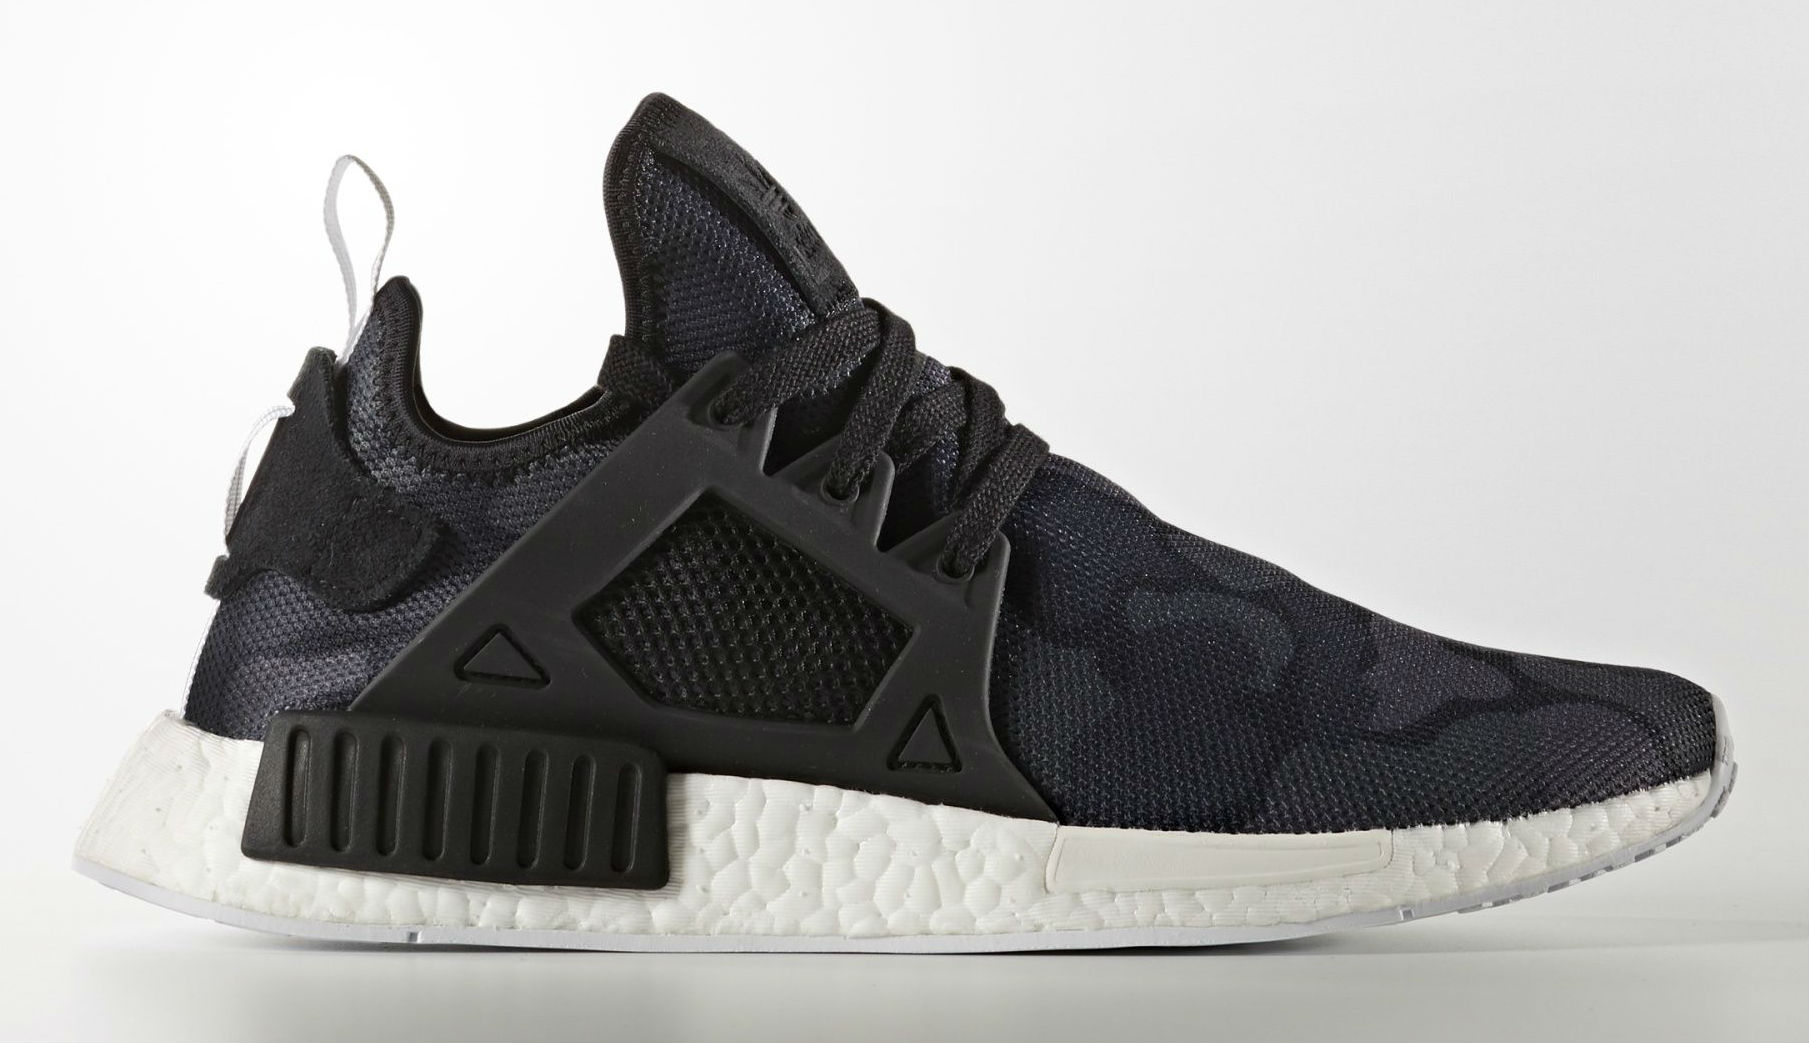 Adidas Originals Nmd Xr1 Camo Nero 6Nm7y